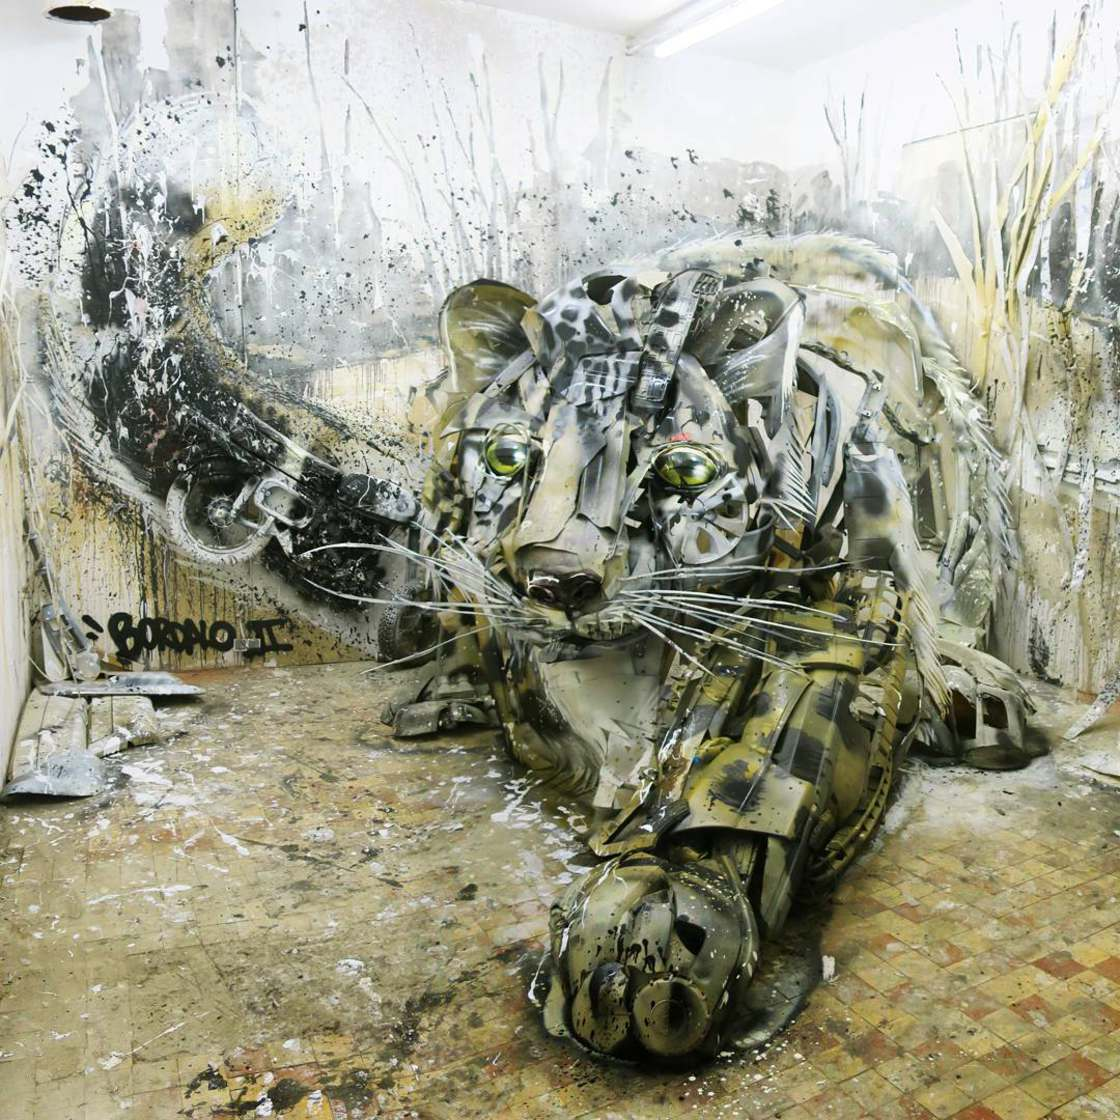 Art with Trash - The latest street art creations from Bordalo II